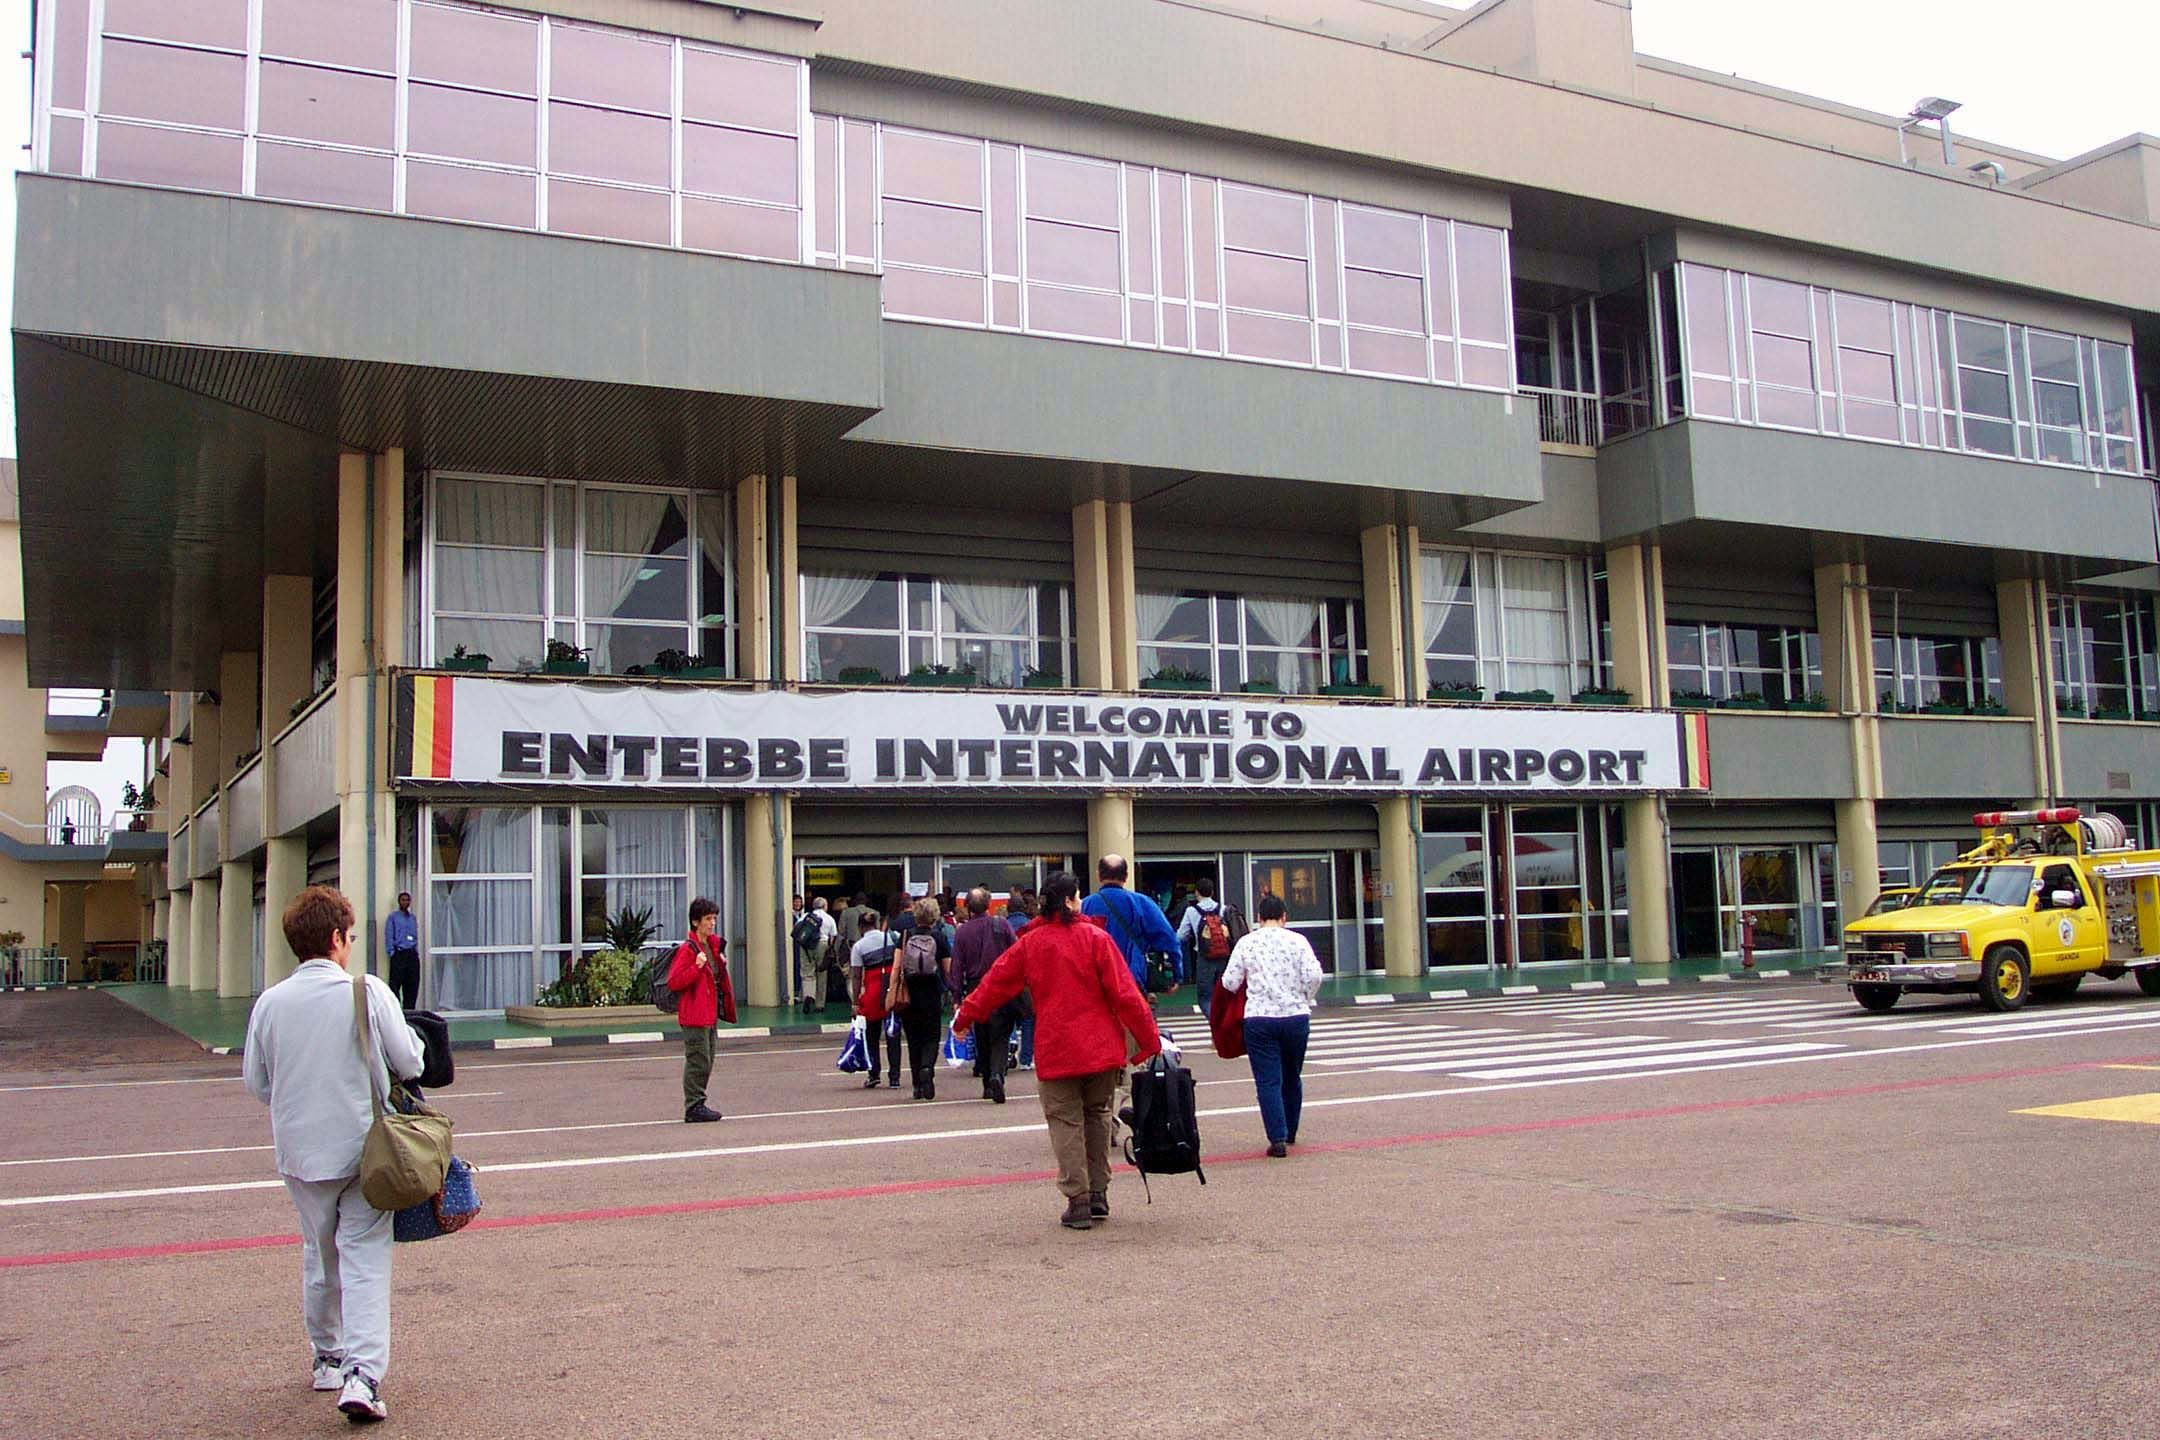 Uganda Civil Aviation Authority issues COVID-19 passenger guidelines